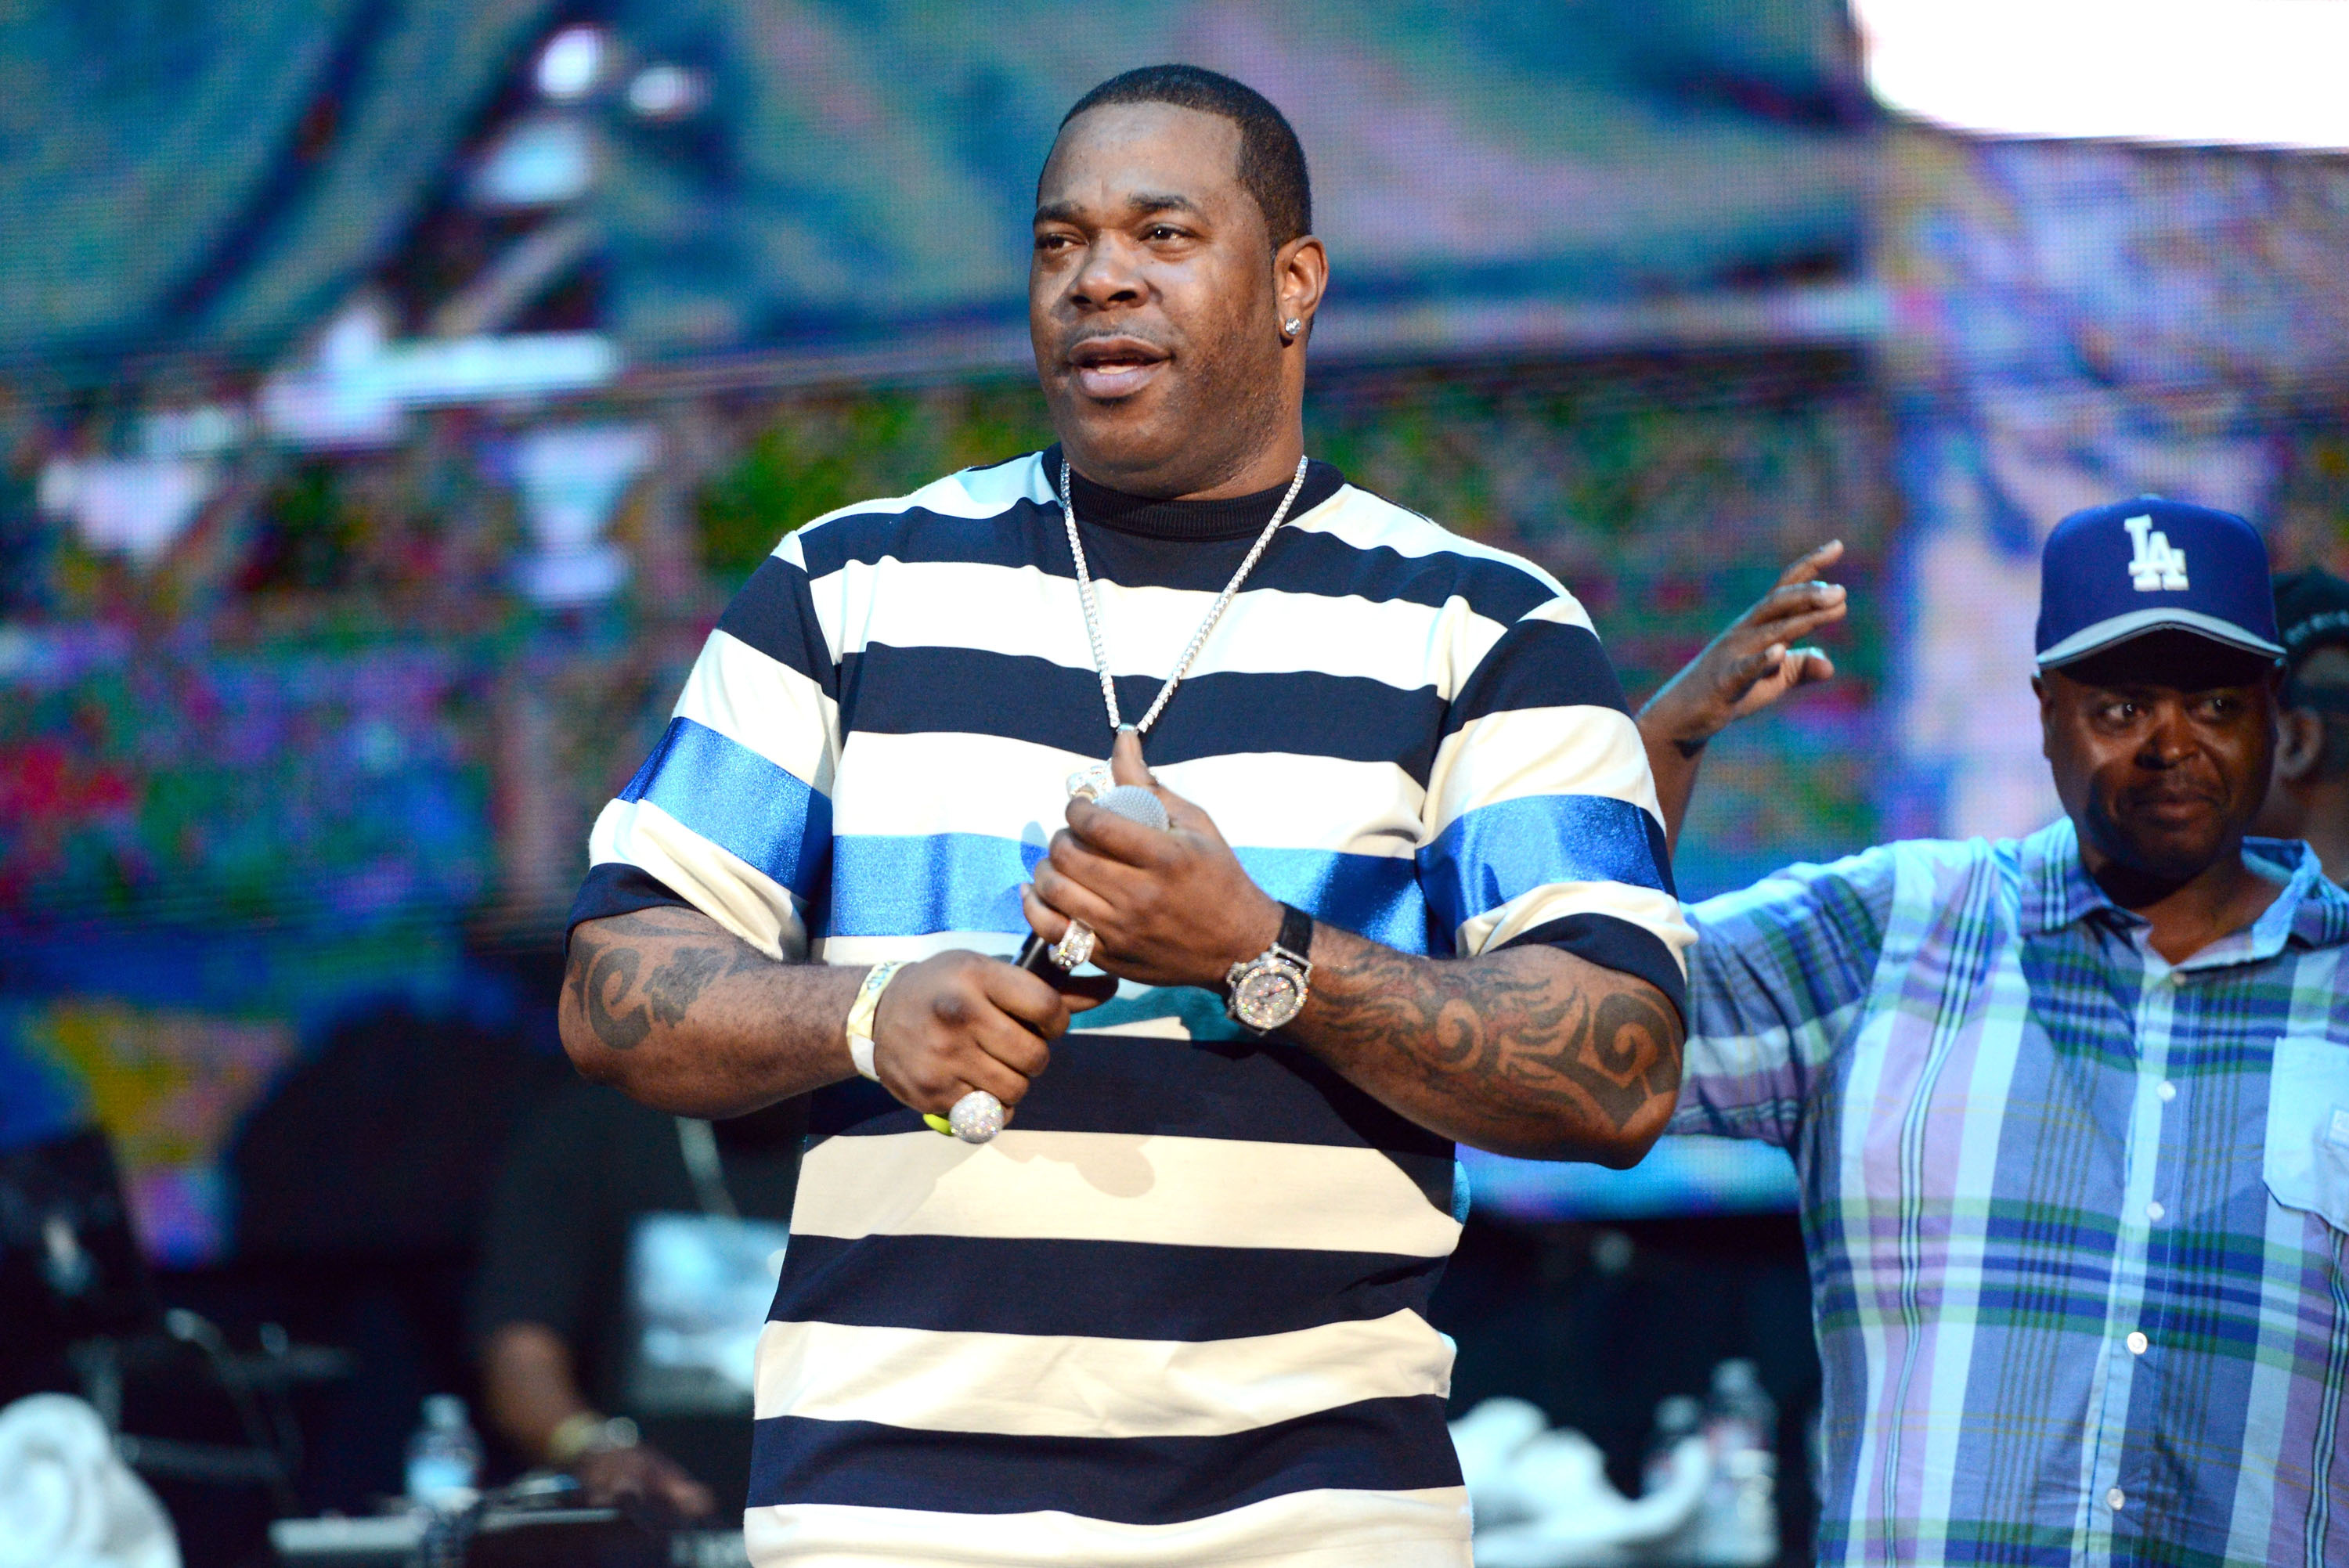 Busta Rhymes performs onstage at Irvine Meadows Amphitheatre on July 18 in Irvine, Calif..